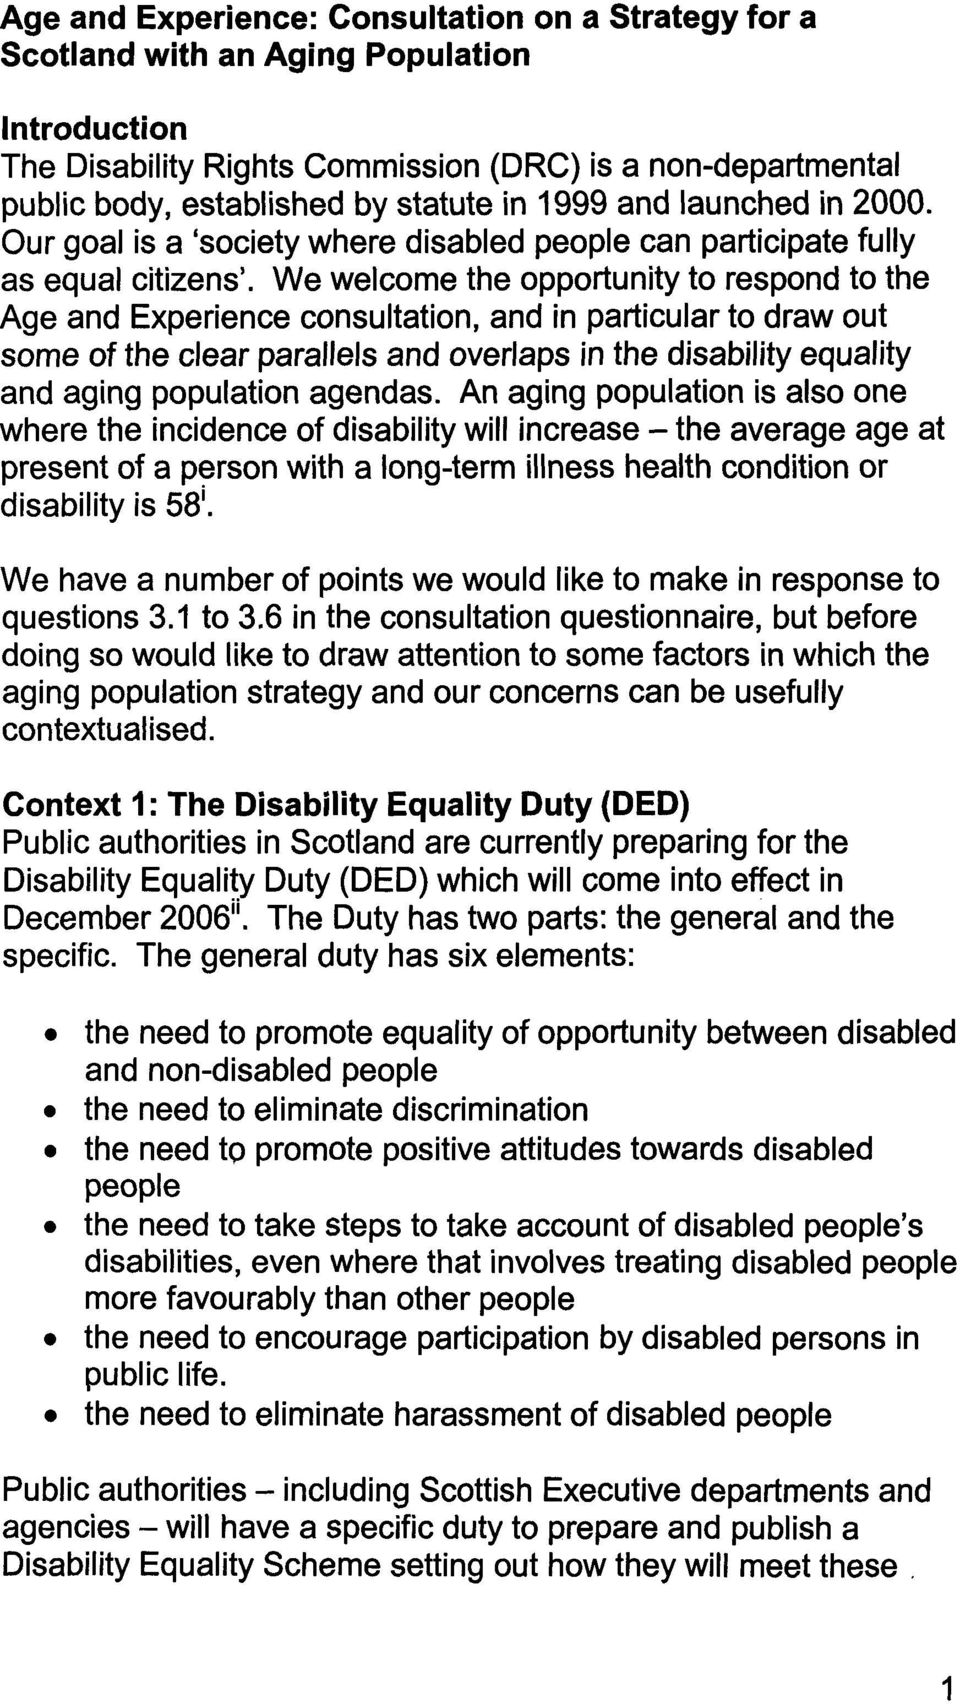 We welcome the opportunity to respond to the Age and Experience consultation, and in particular to draw out some of the clear parallels and overlaps in the disability equality and aging population